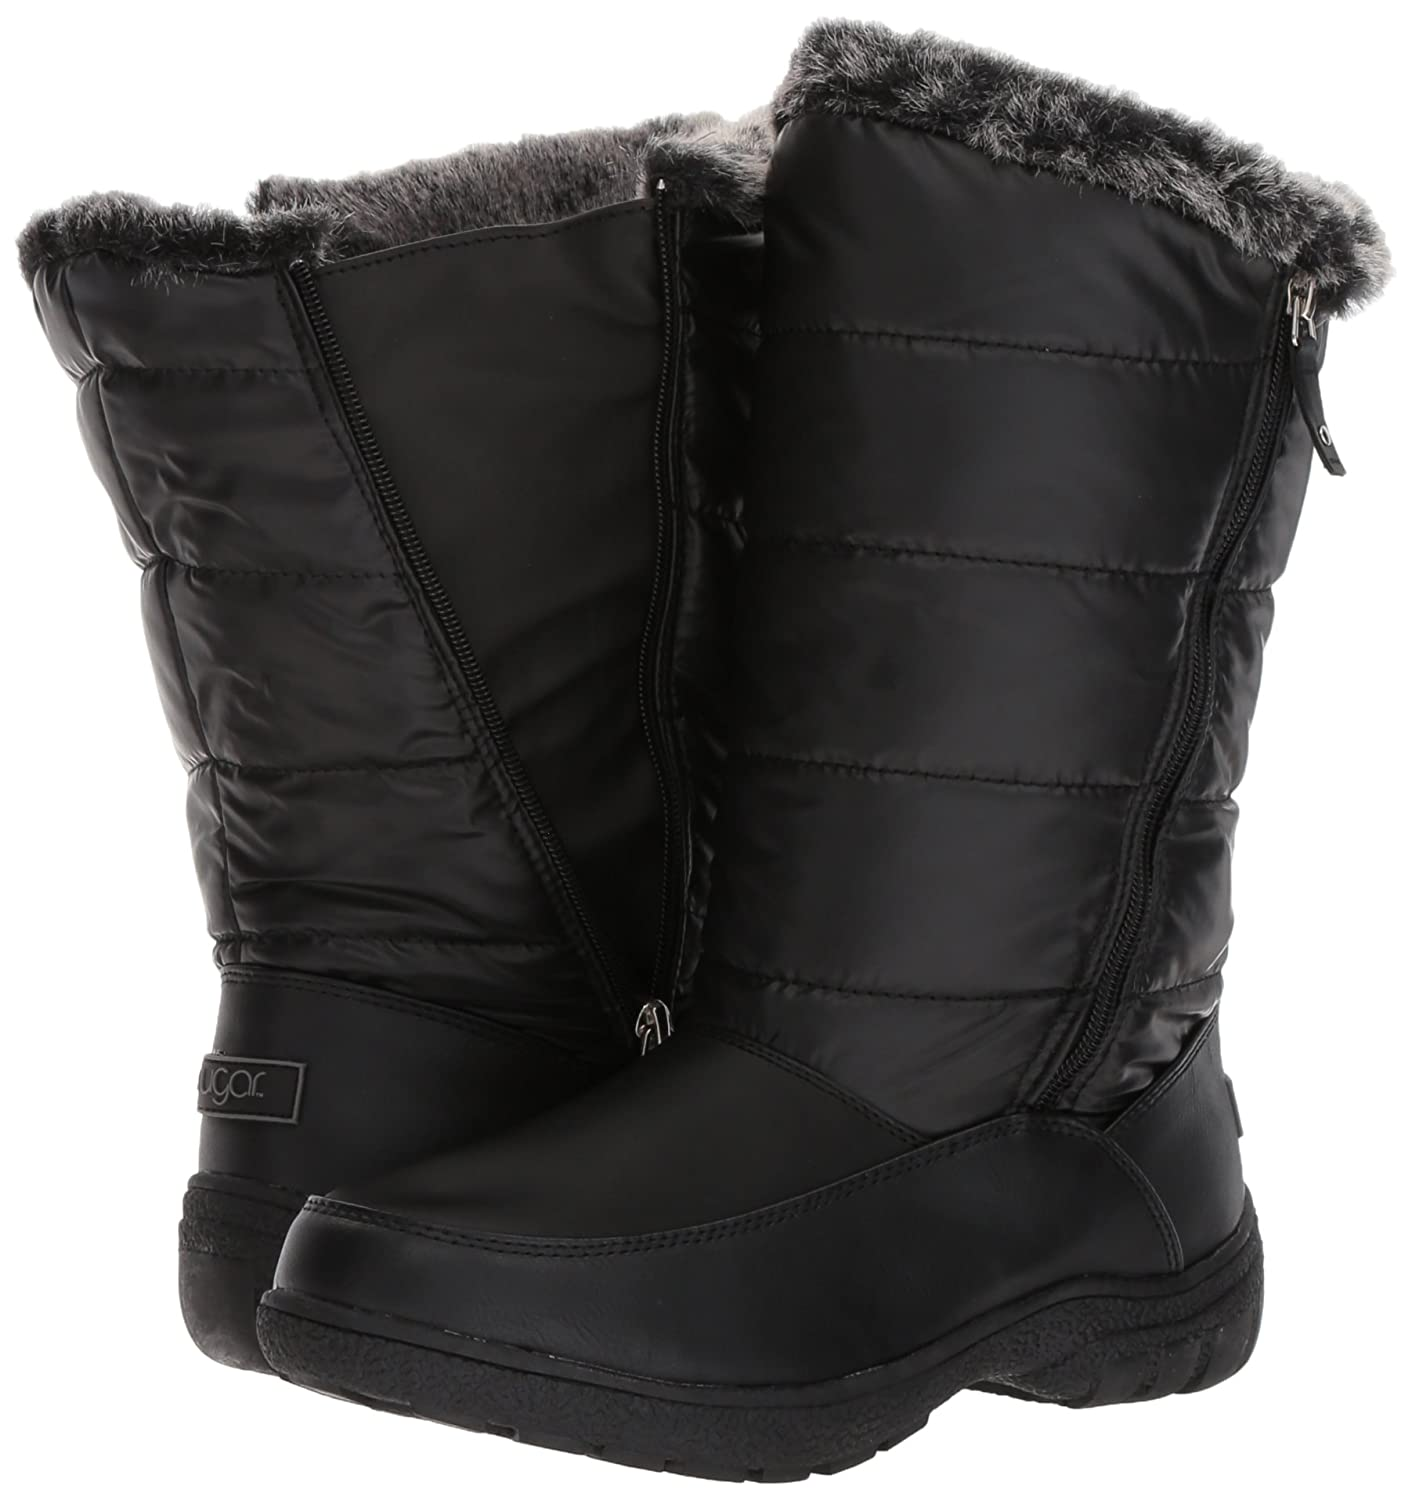 70cc65961f ... Sugar Women s Lucille Lucille Lucille Tall Shaft Faux Fur Waterproof  Snow Winter Weather Boot B076BYB66V 9 ...